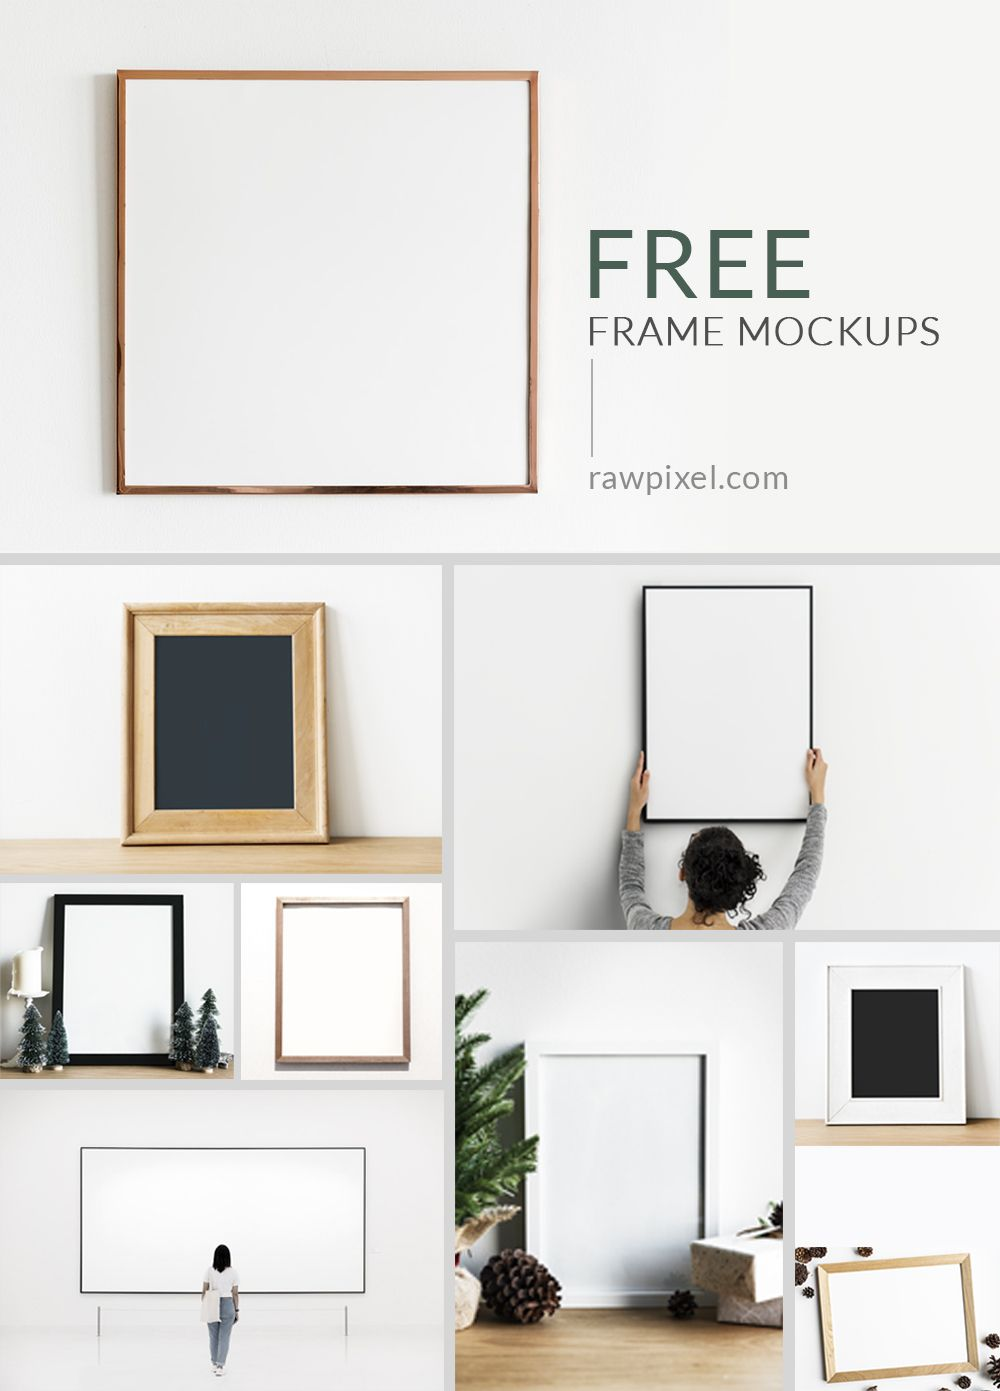 Download Beautiful Free And Premium Royalty Free Frame Mockups As Well As Other Mockups Of Laptops Phones I Frame Mockup Free Print Mockup Free Frame Mockups